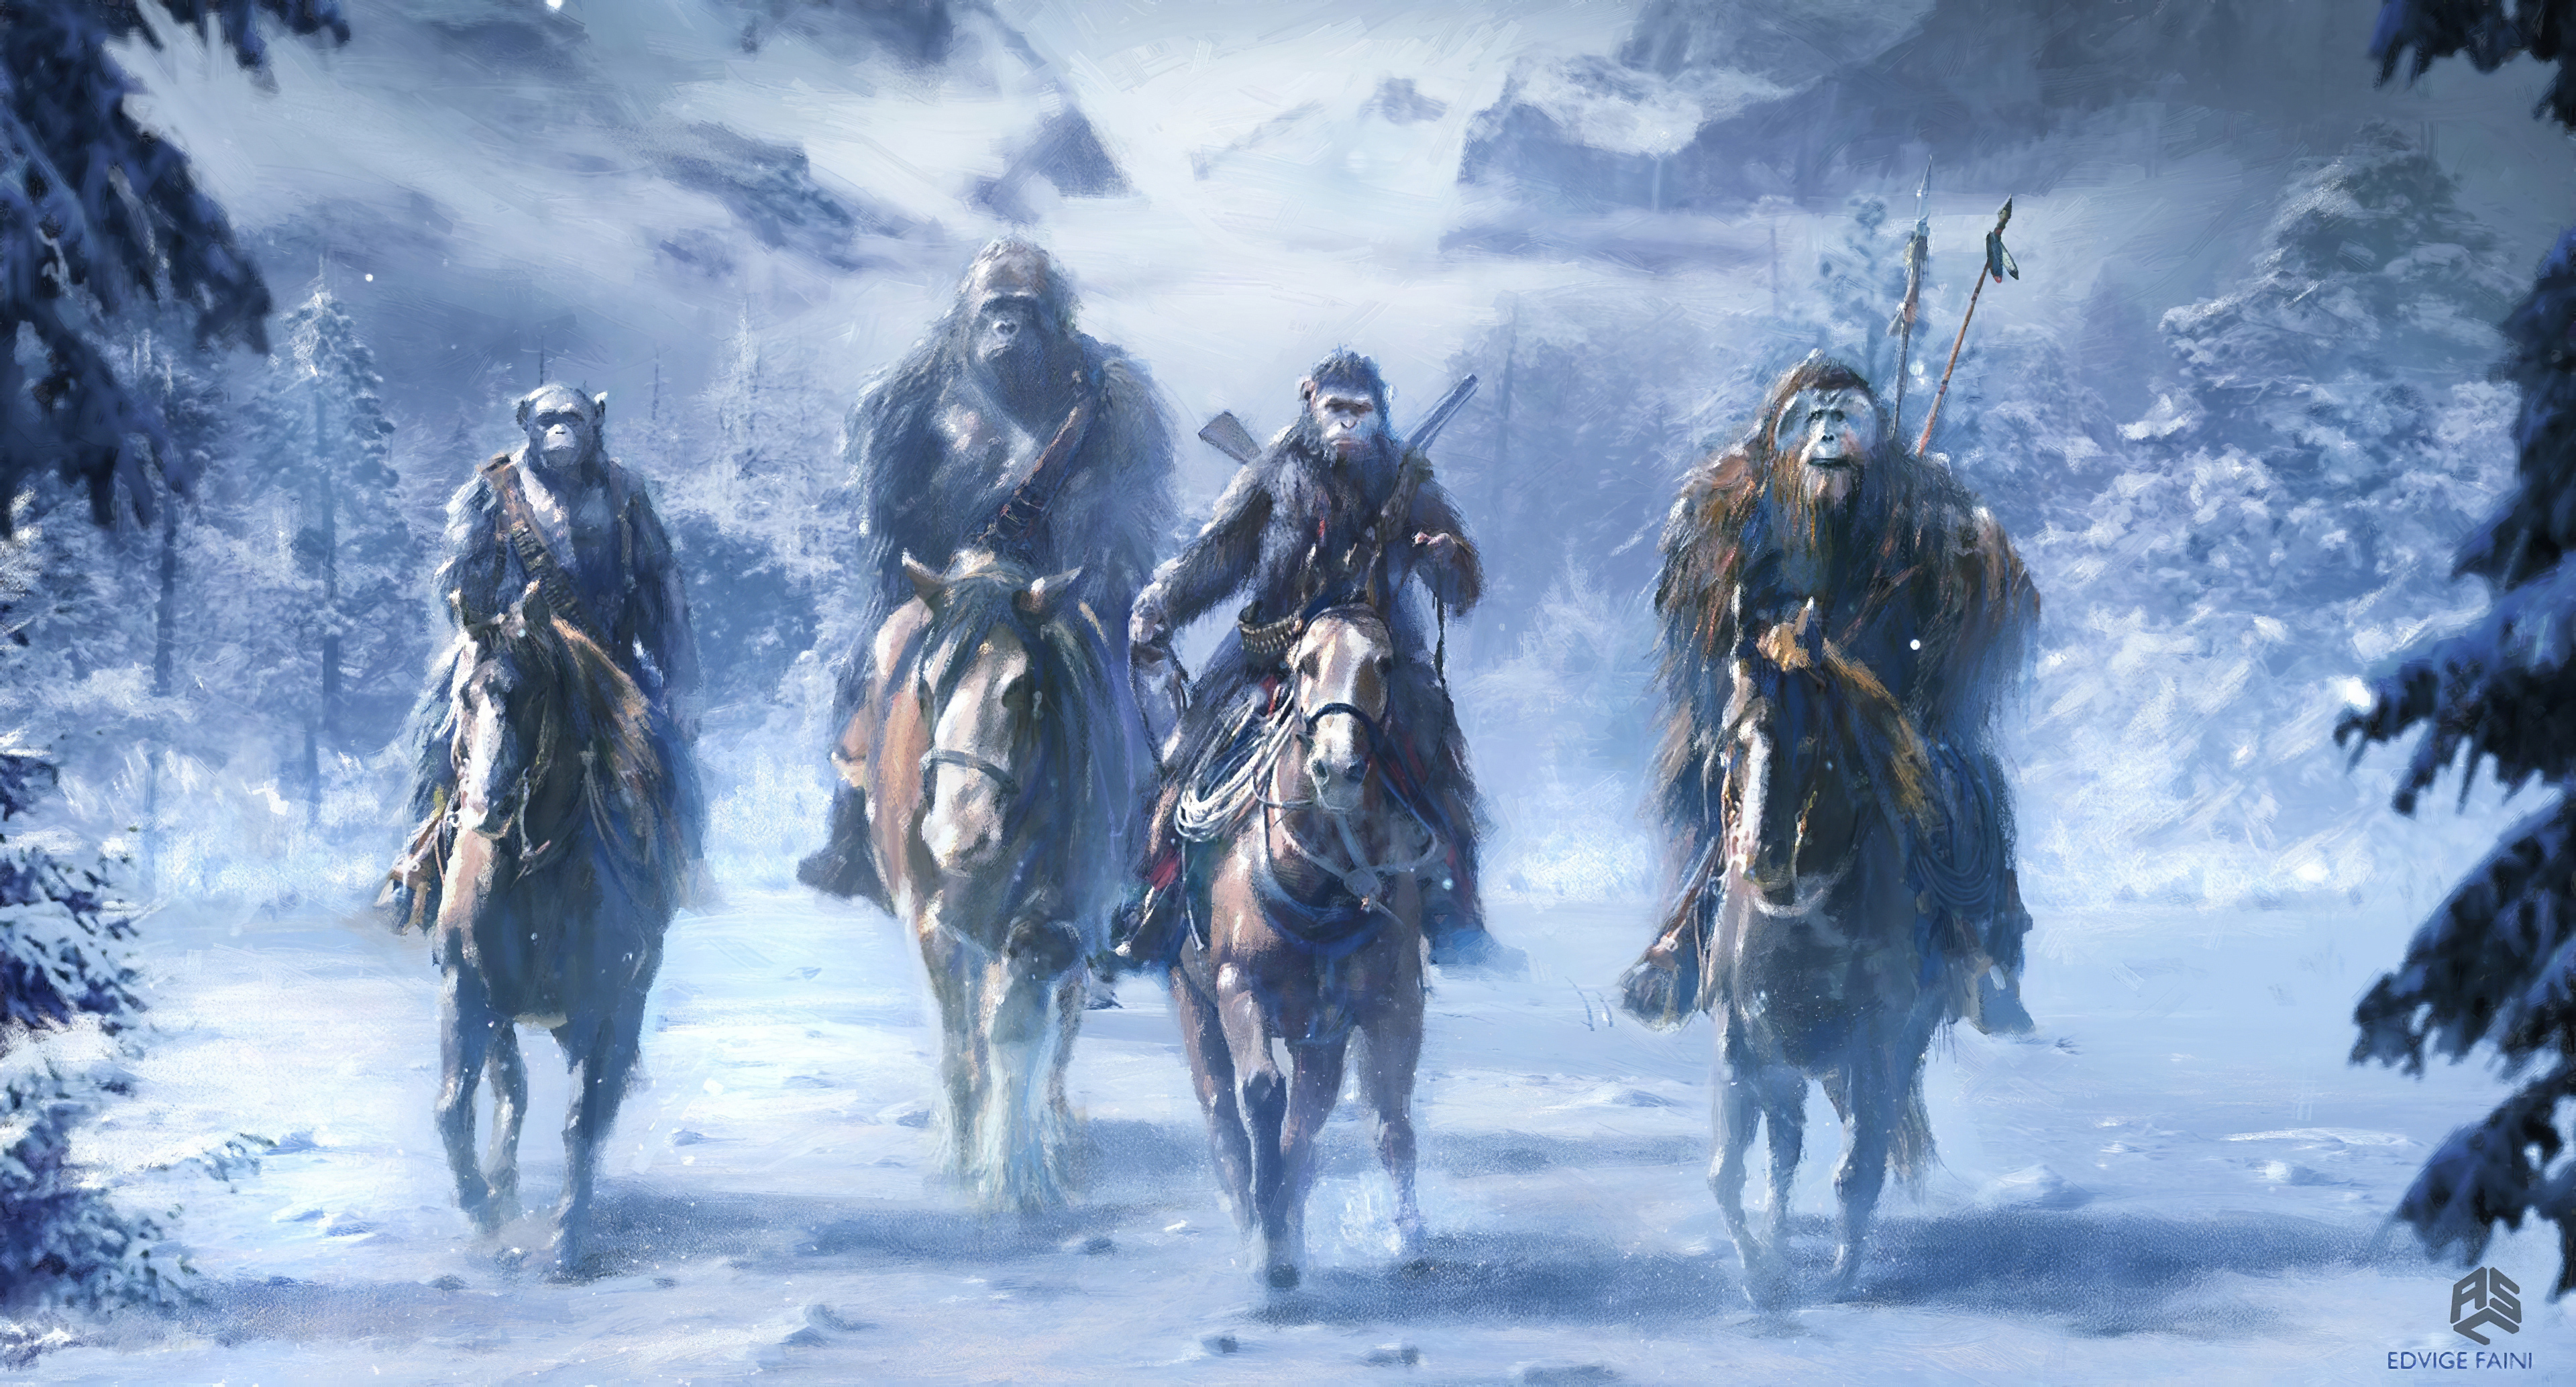 Wallpaper 4k War For The Planet Of The Apes Concept Art